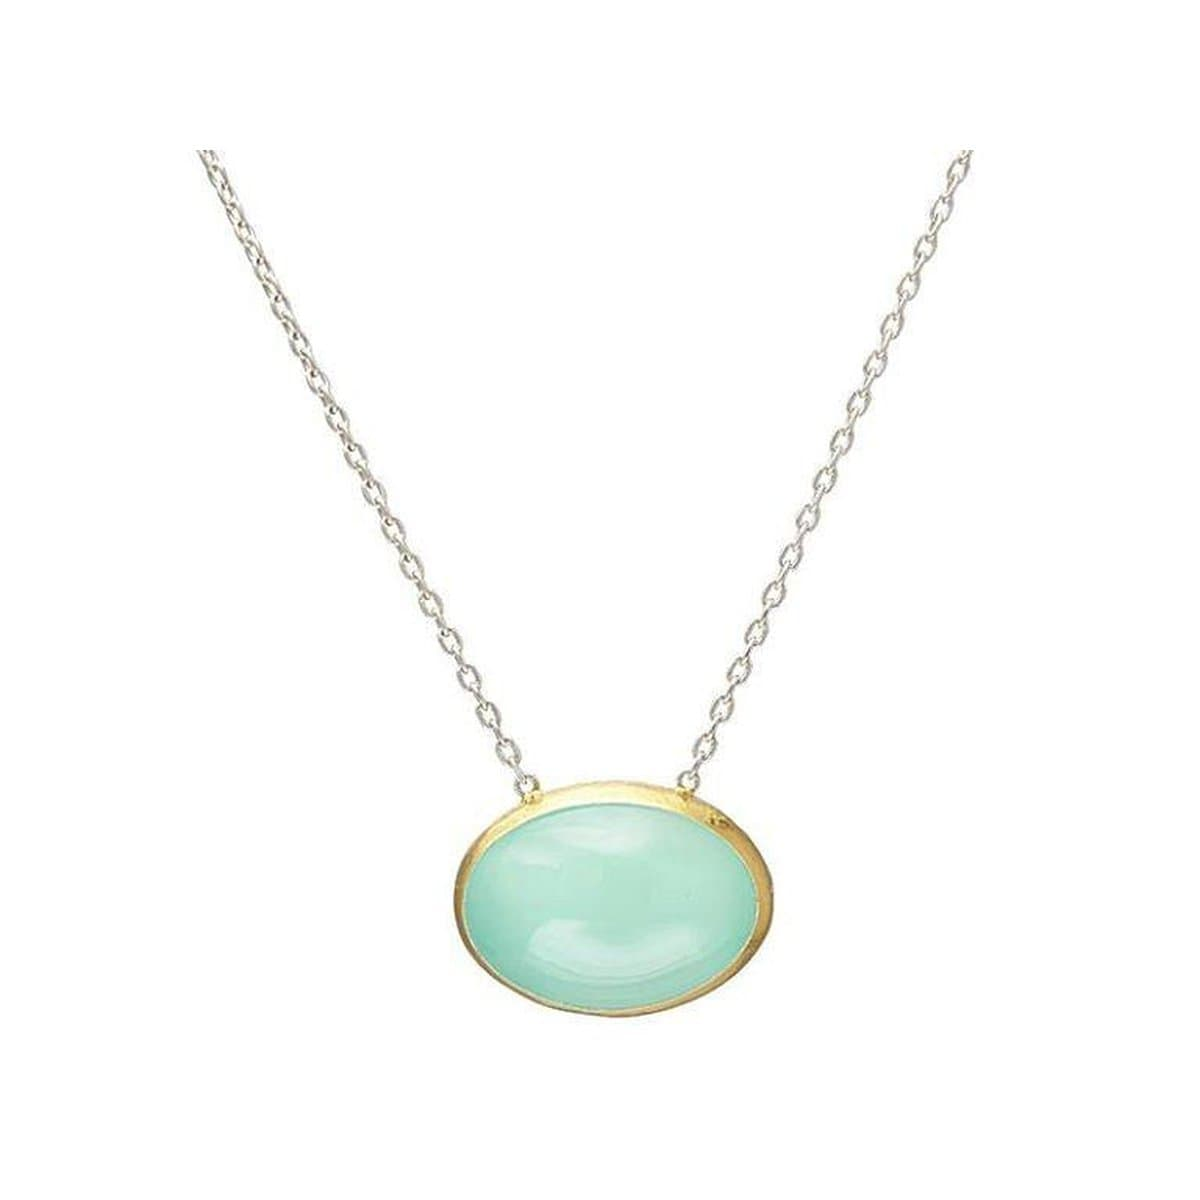 Galapagos Sterling Silver Chalcedony Necklace - SN-U26099-ACA-GURHAN-Renee Taylor Gallery